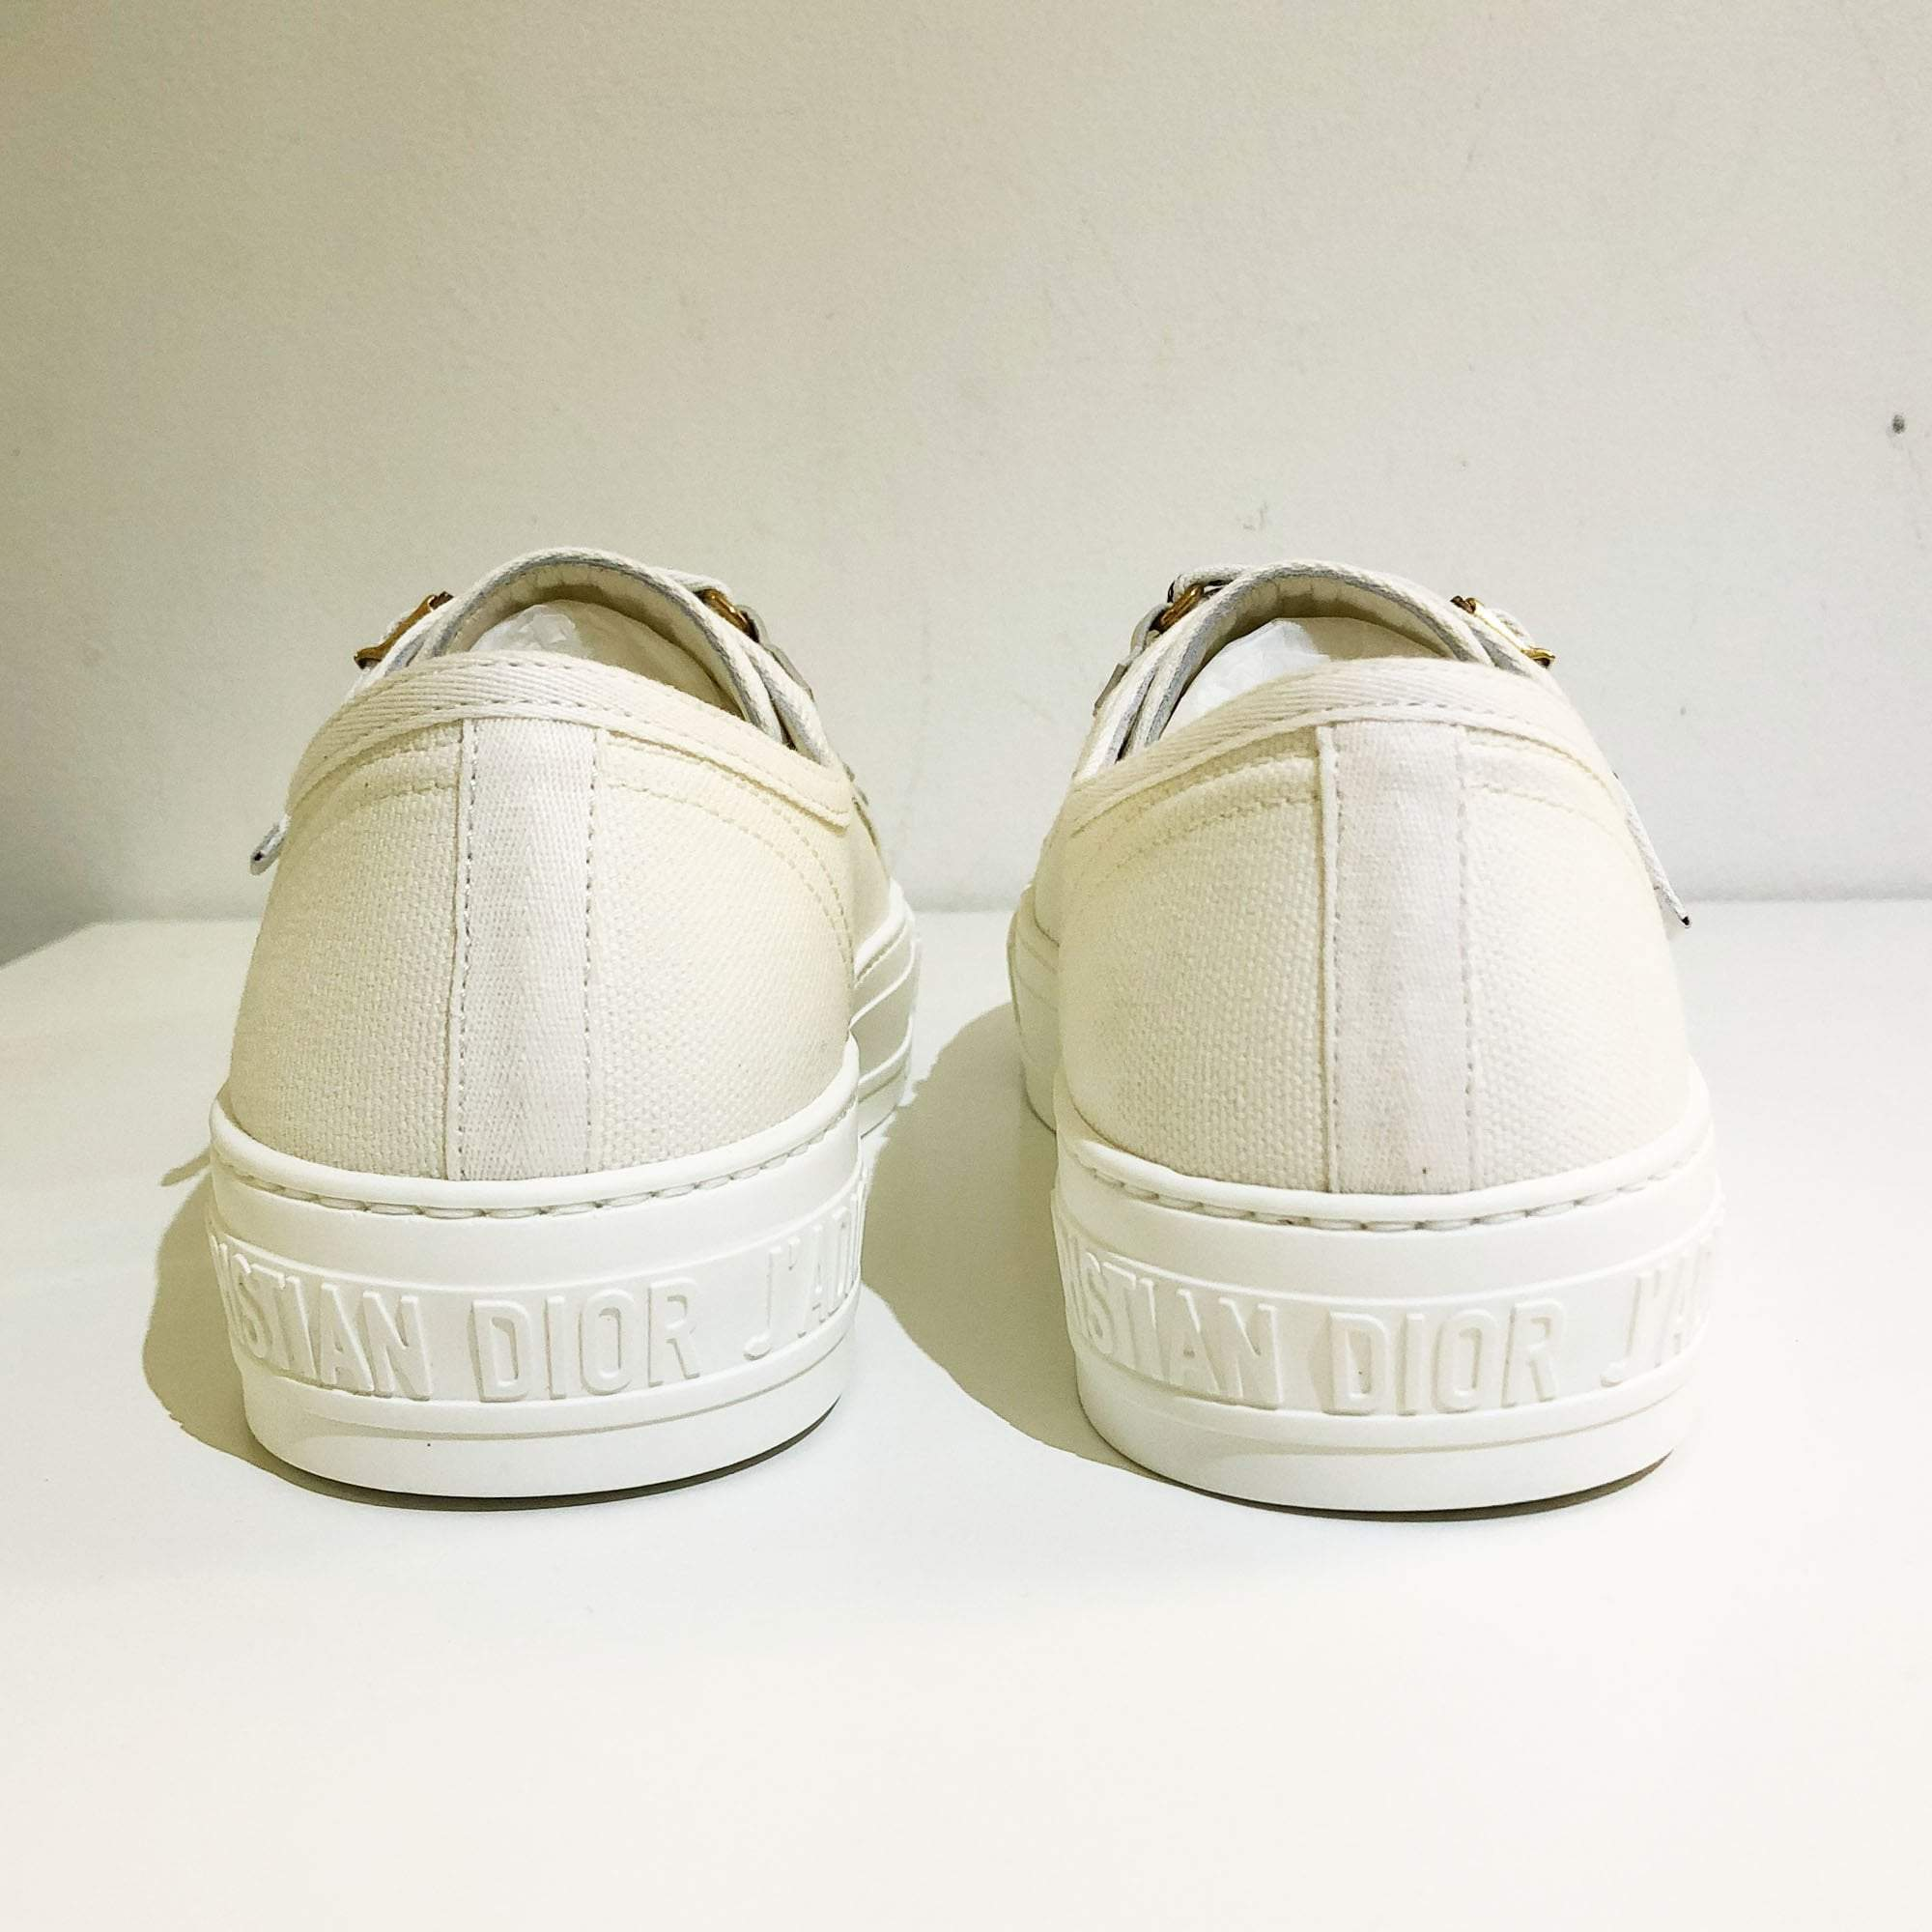 Christian Dior Low Top Trainer in White Canvas